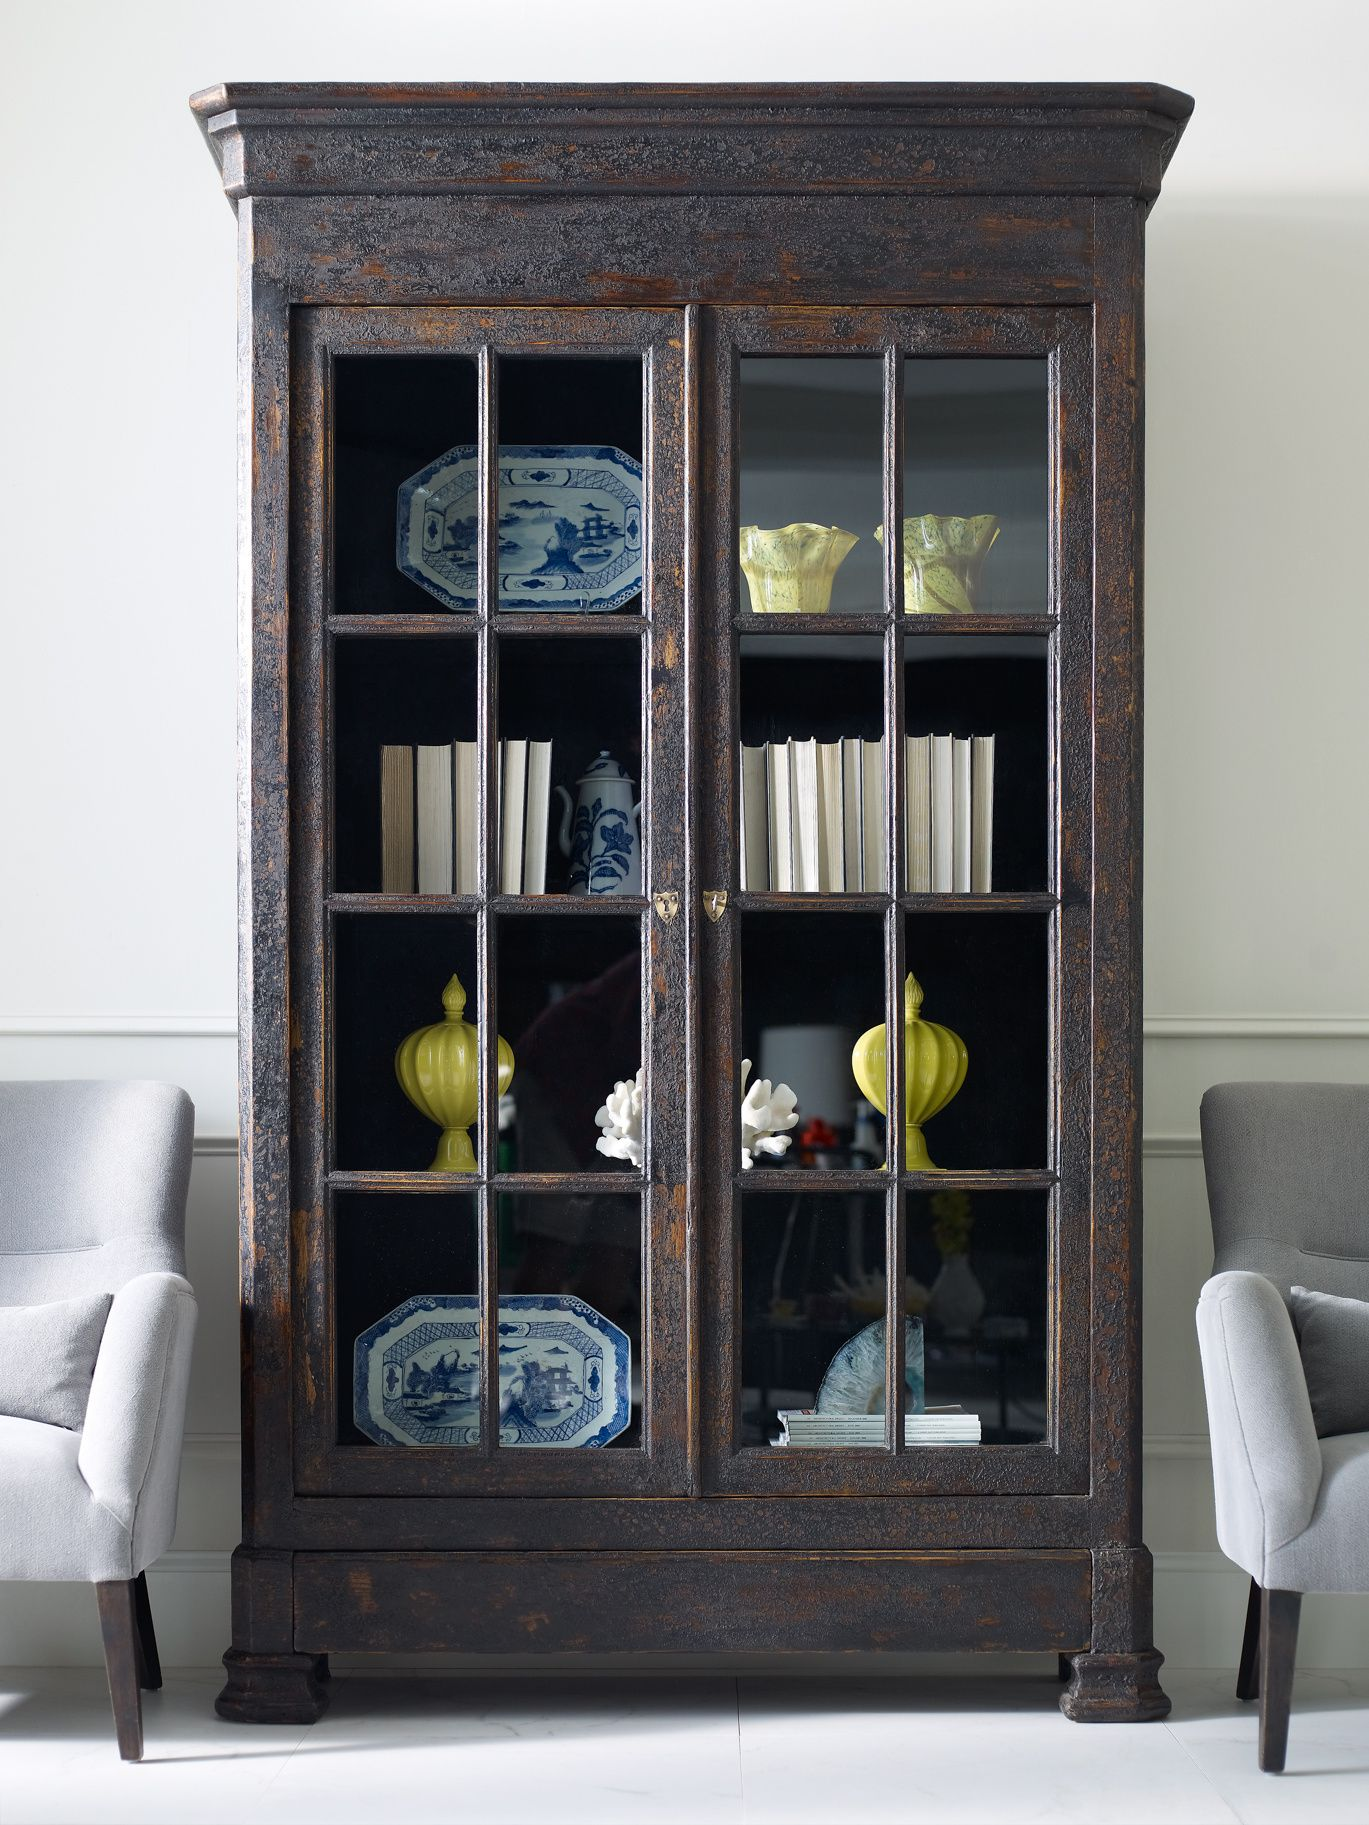 Display Case Furniture Stores In Knoxville Braden S